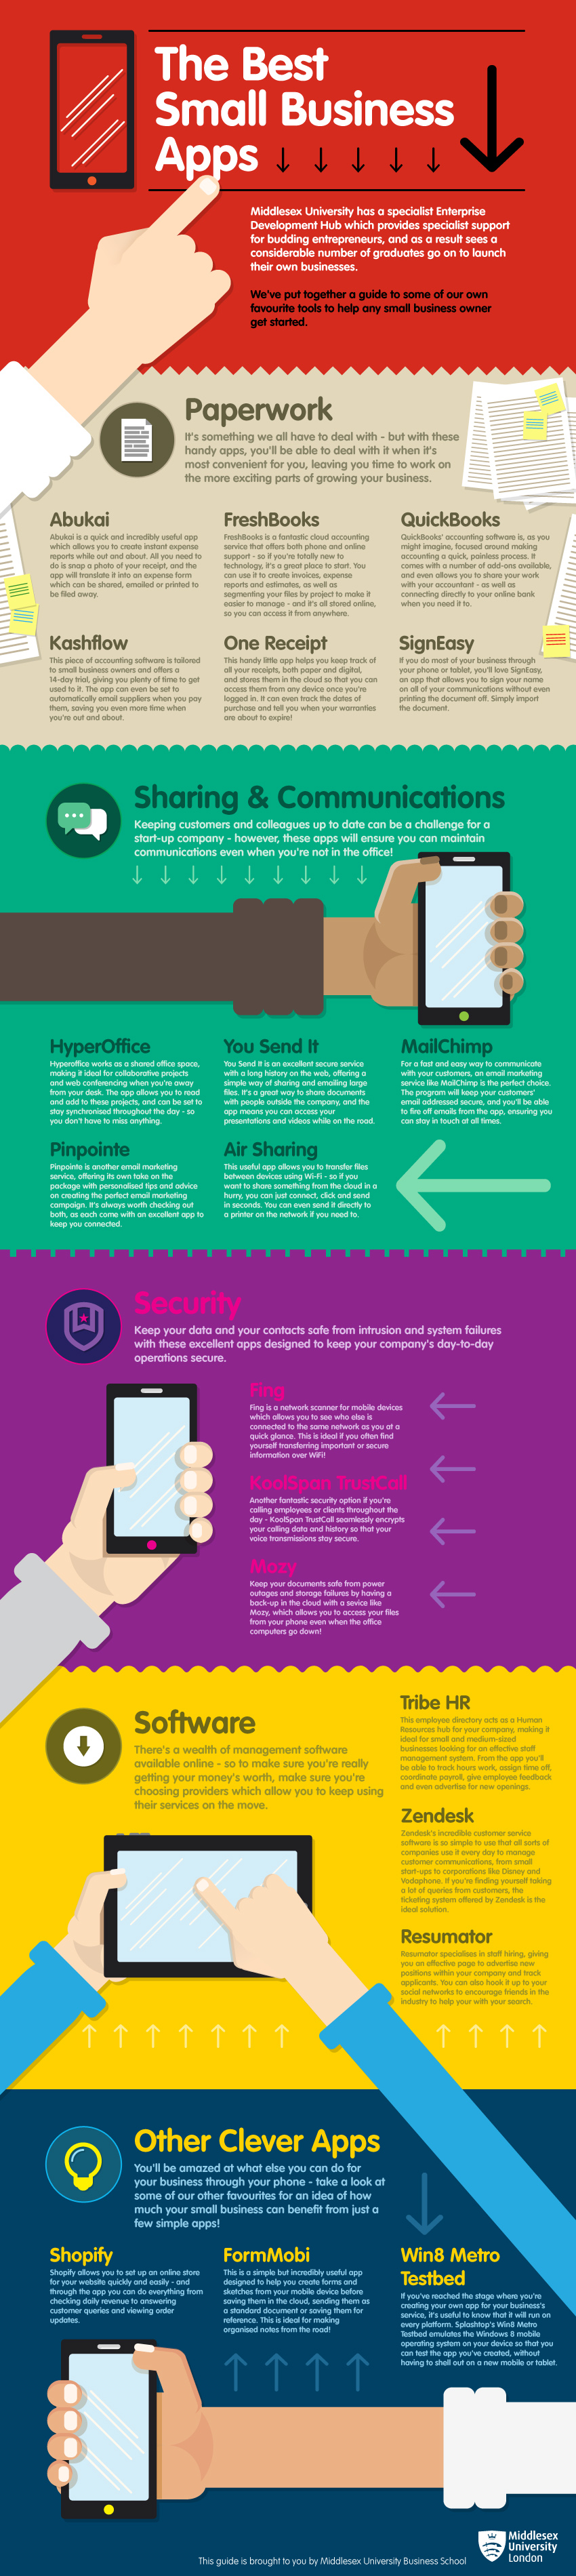 infographic best small business apps